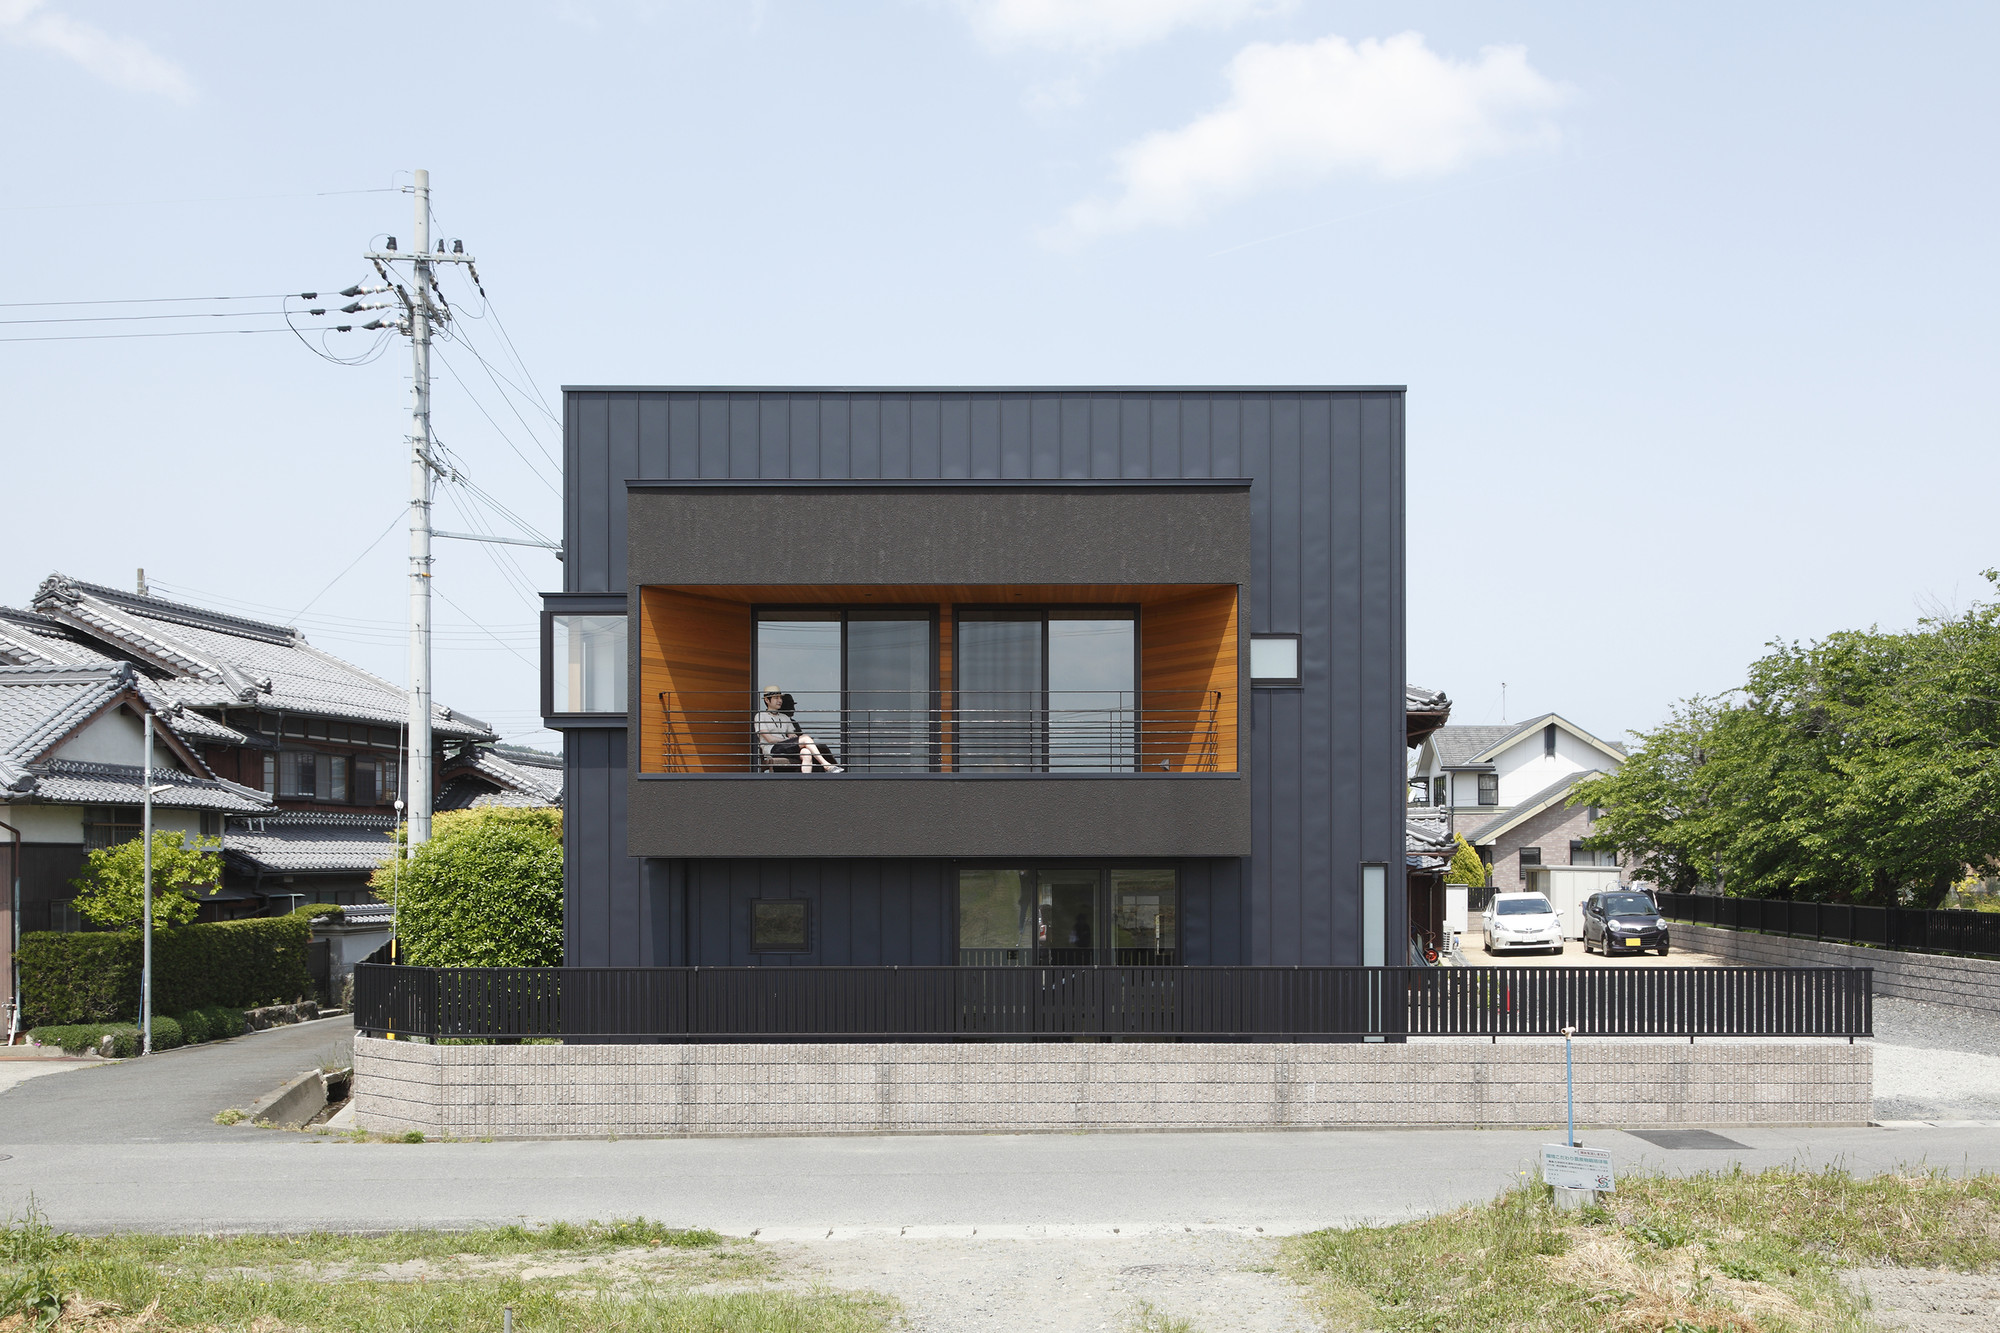 Minakuchi House / ALTS Design Office, Courtesy Of ALTS Design Office